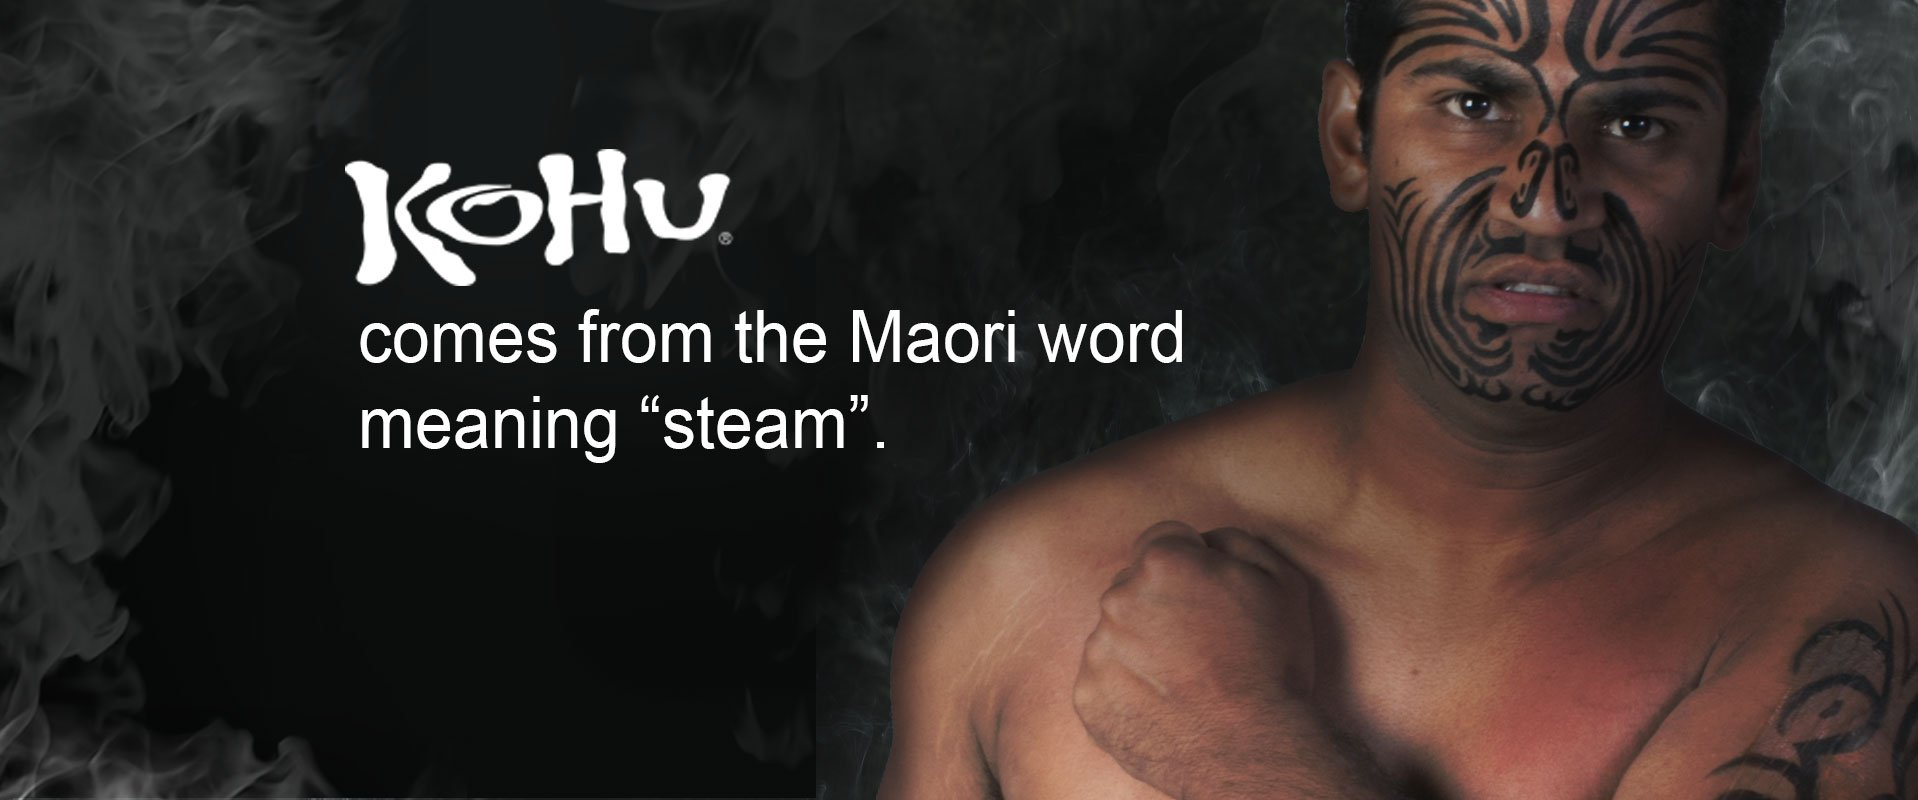 "KOHU comes from the Maori word meaning ""steam""."